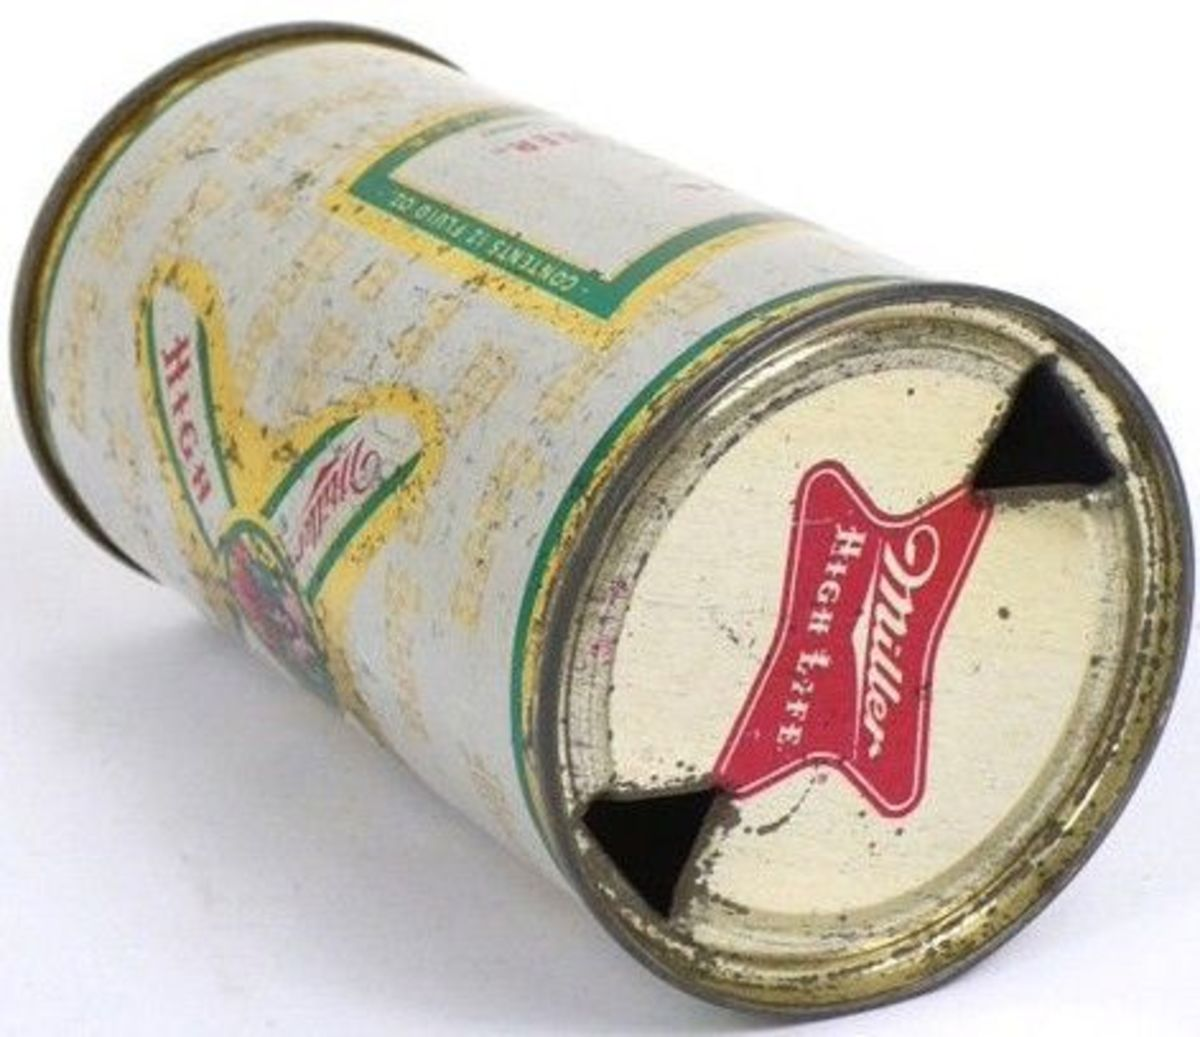 The flat top beer can